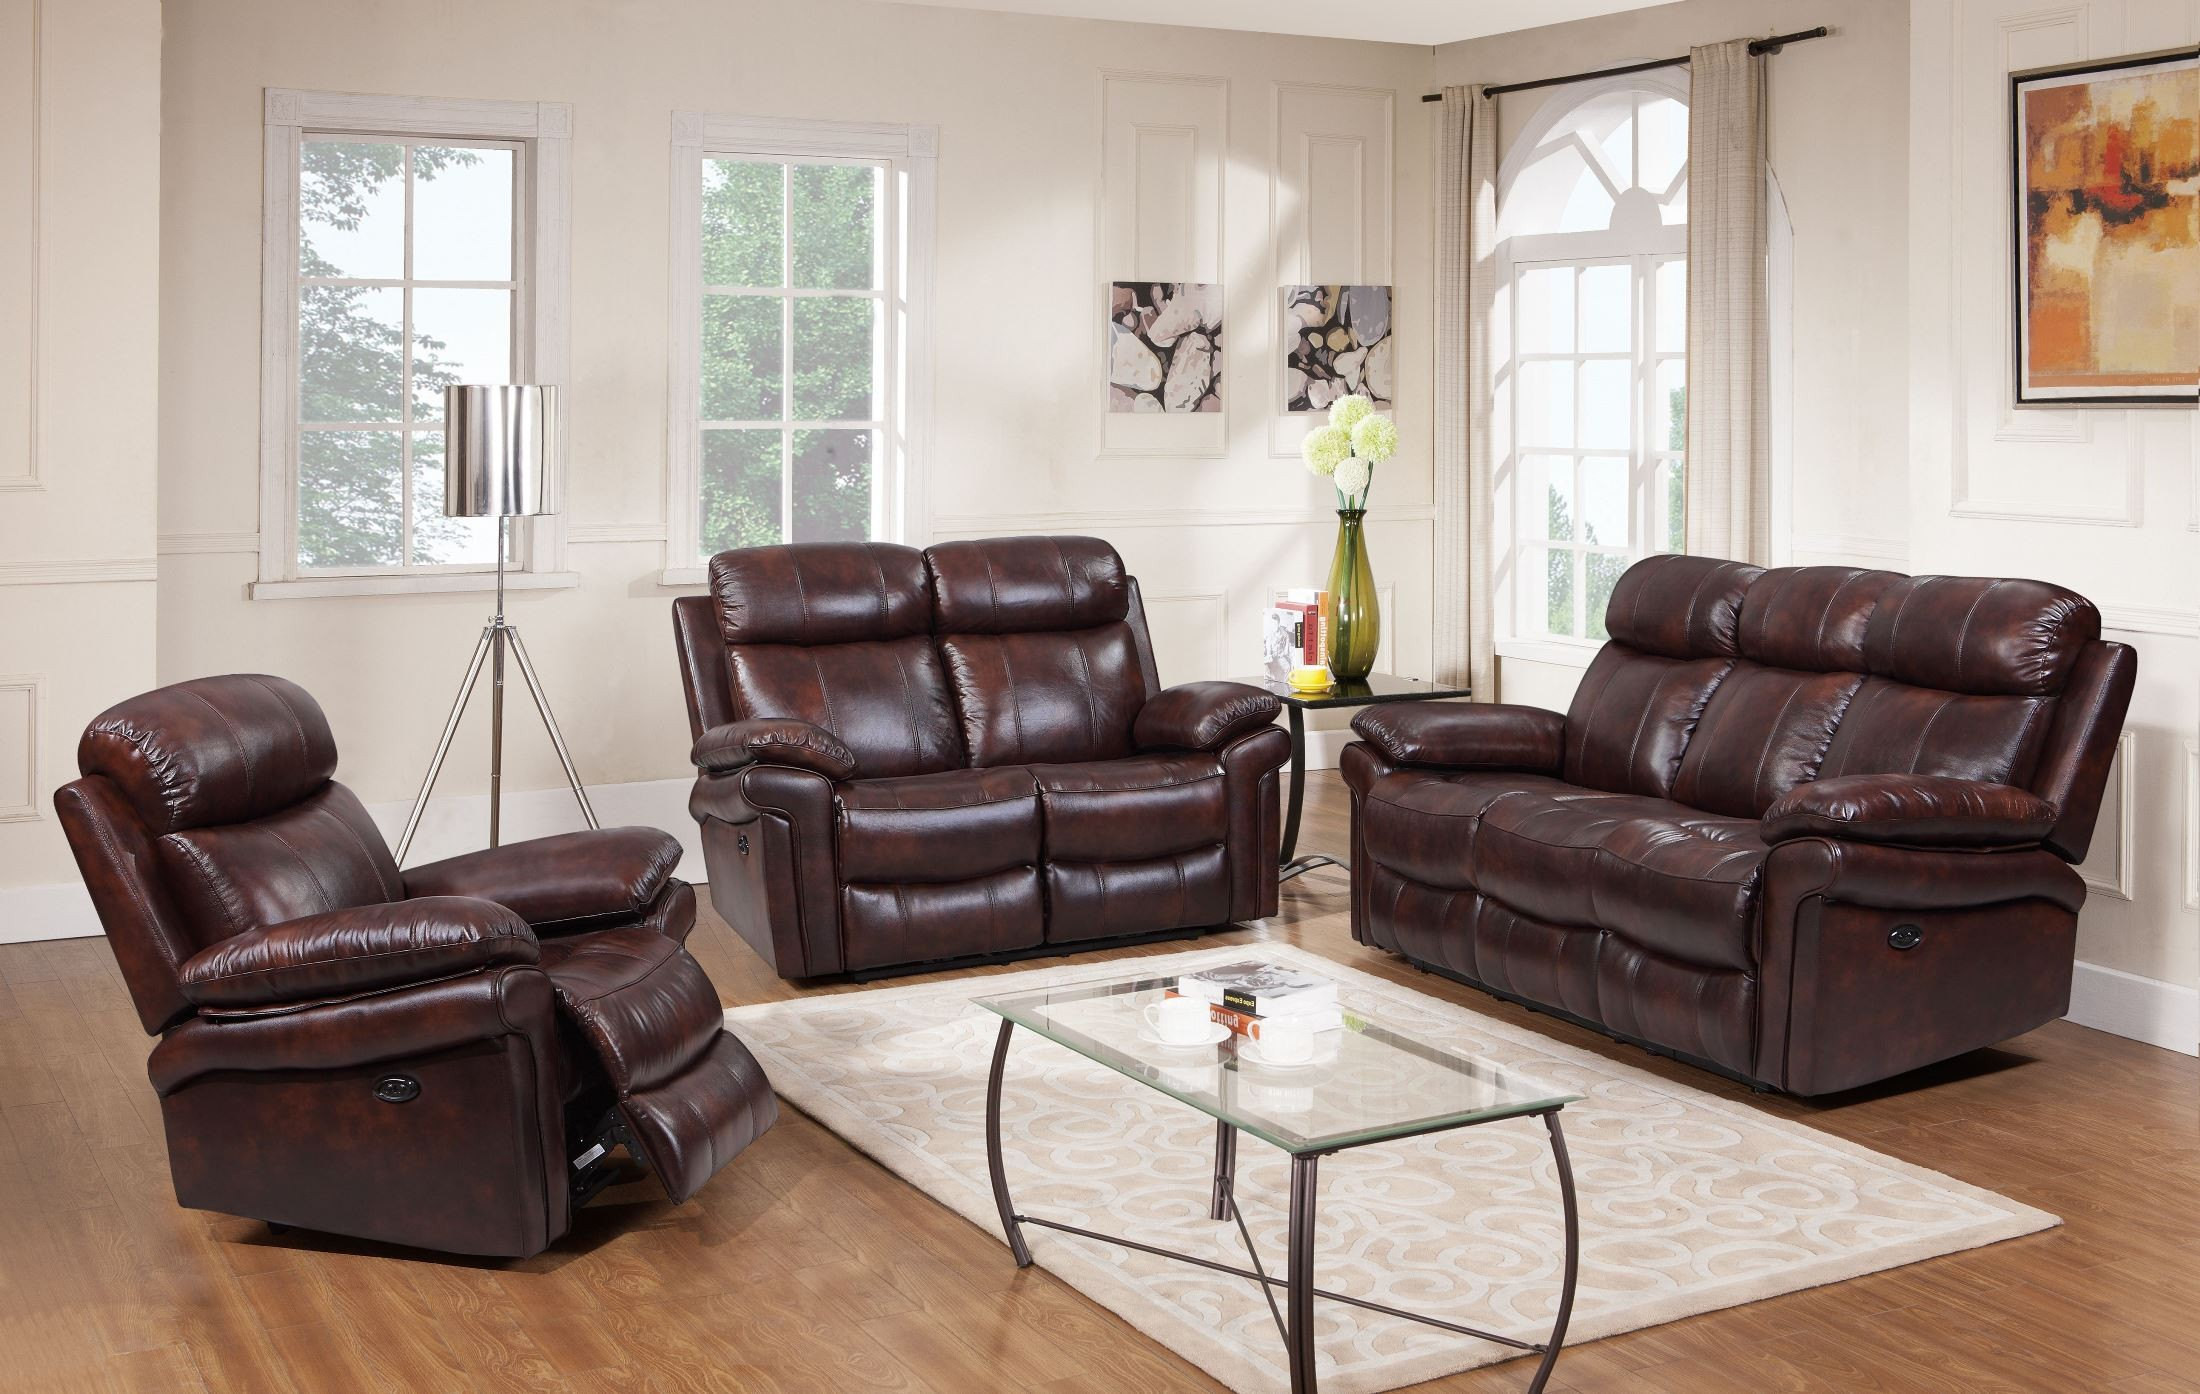 Shae joplin brown leather power reclining sofa 1555 e2117 for J m furniture soho living room collection